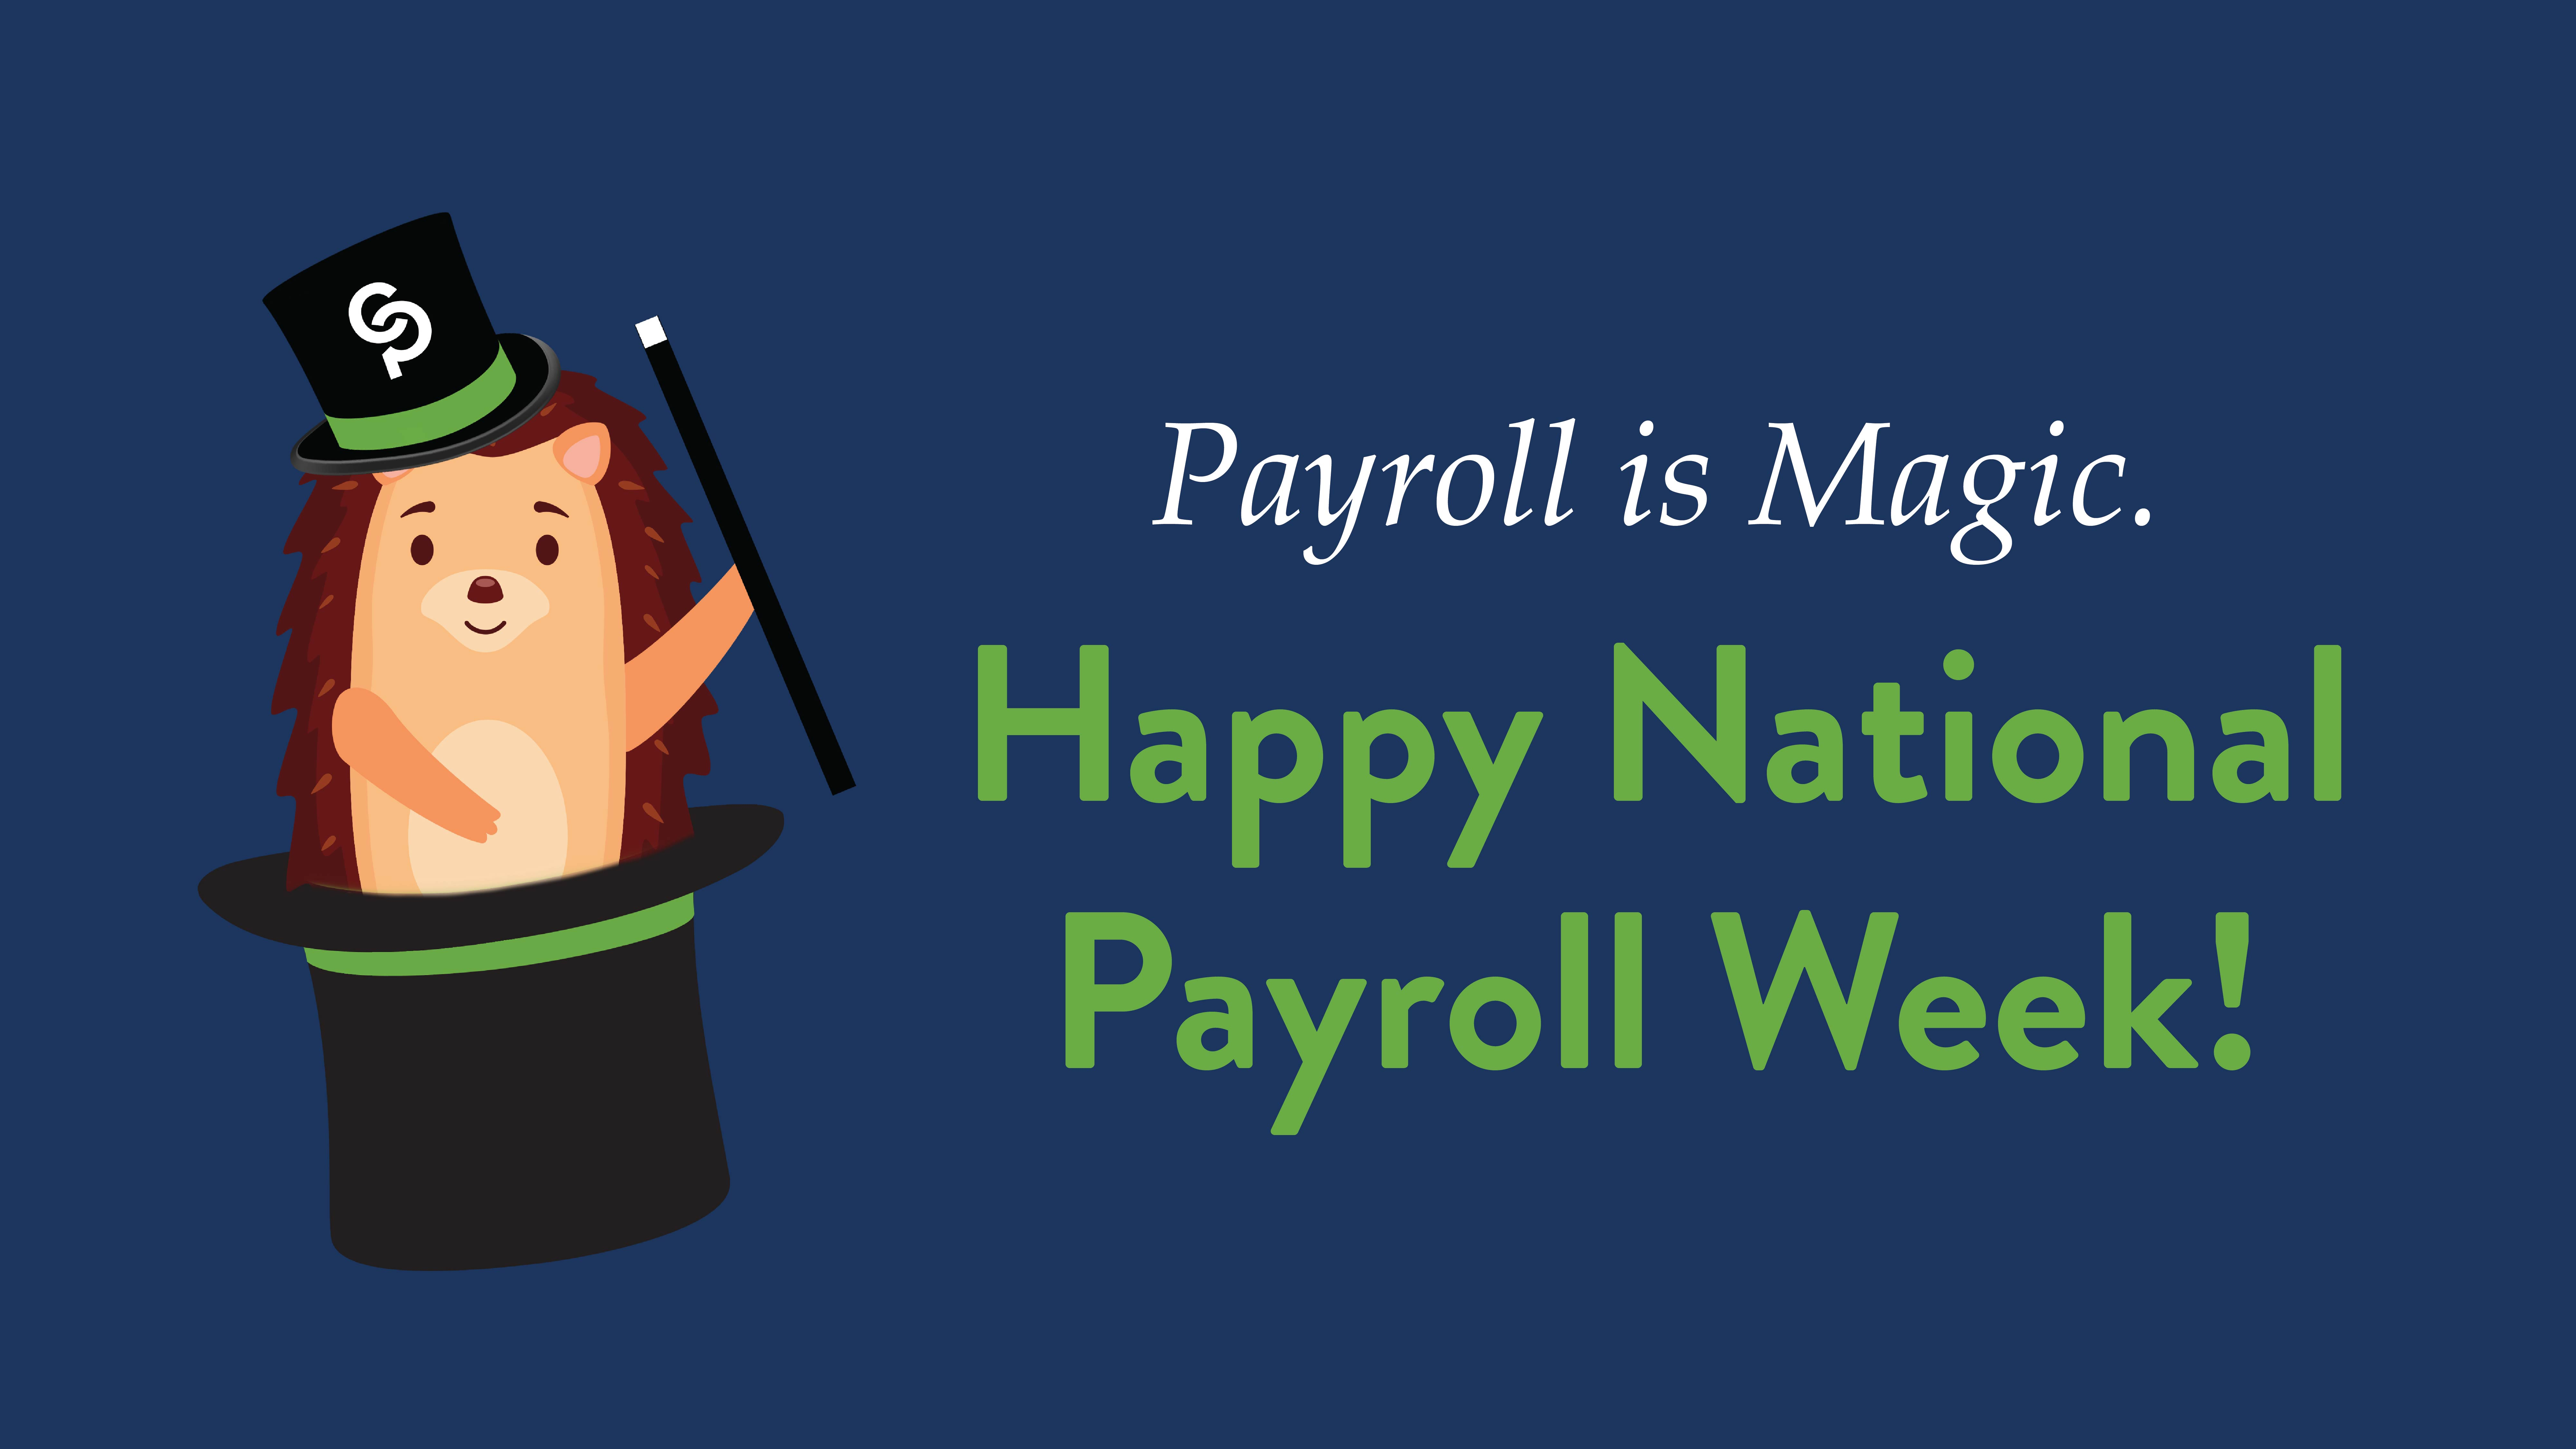 Why ConnectPay Believes Payroll Is Magic!